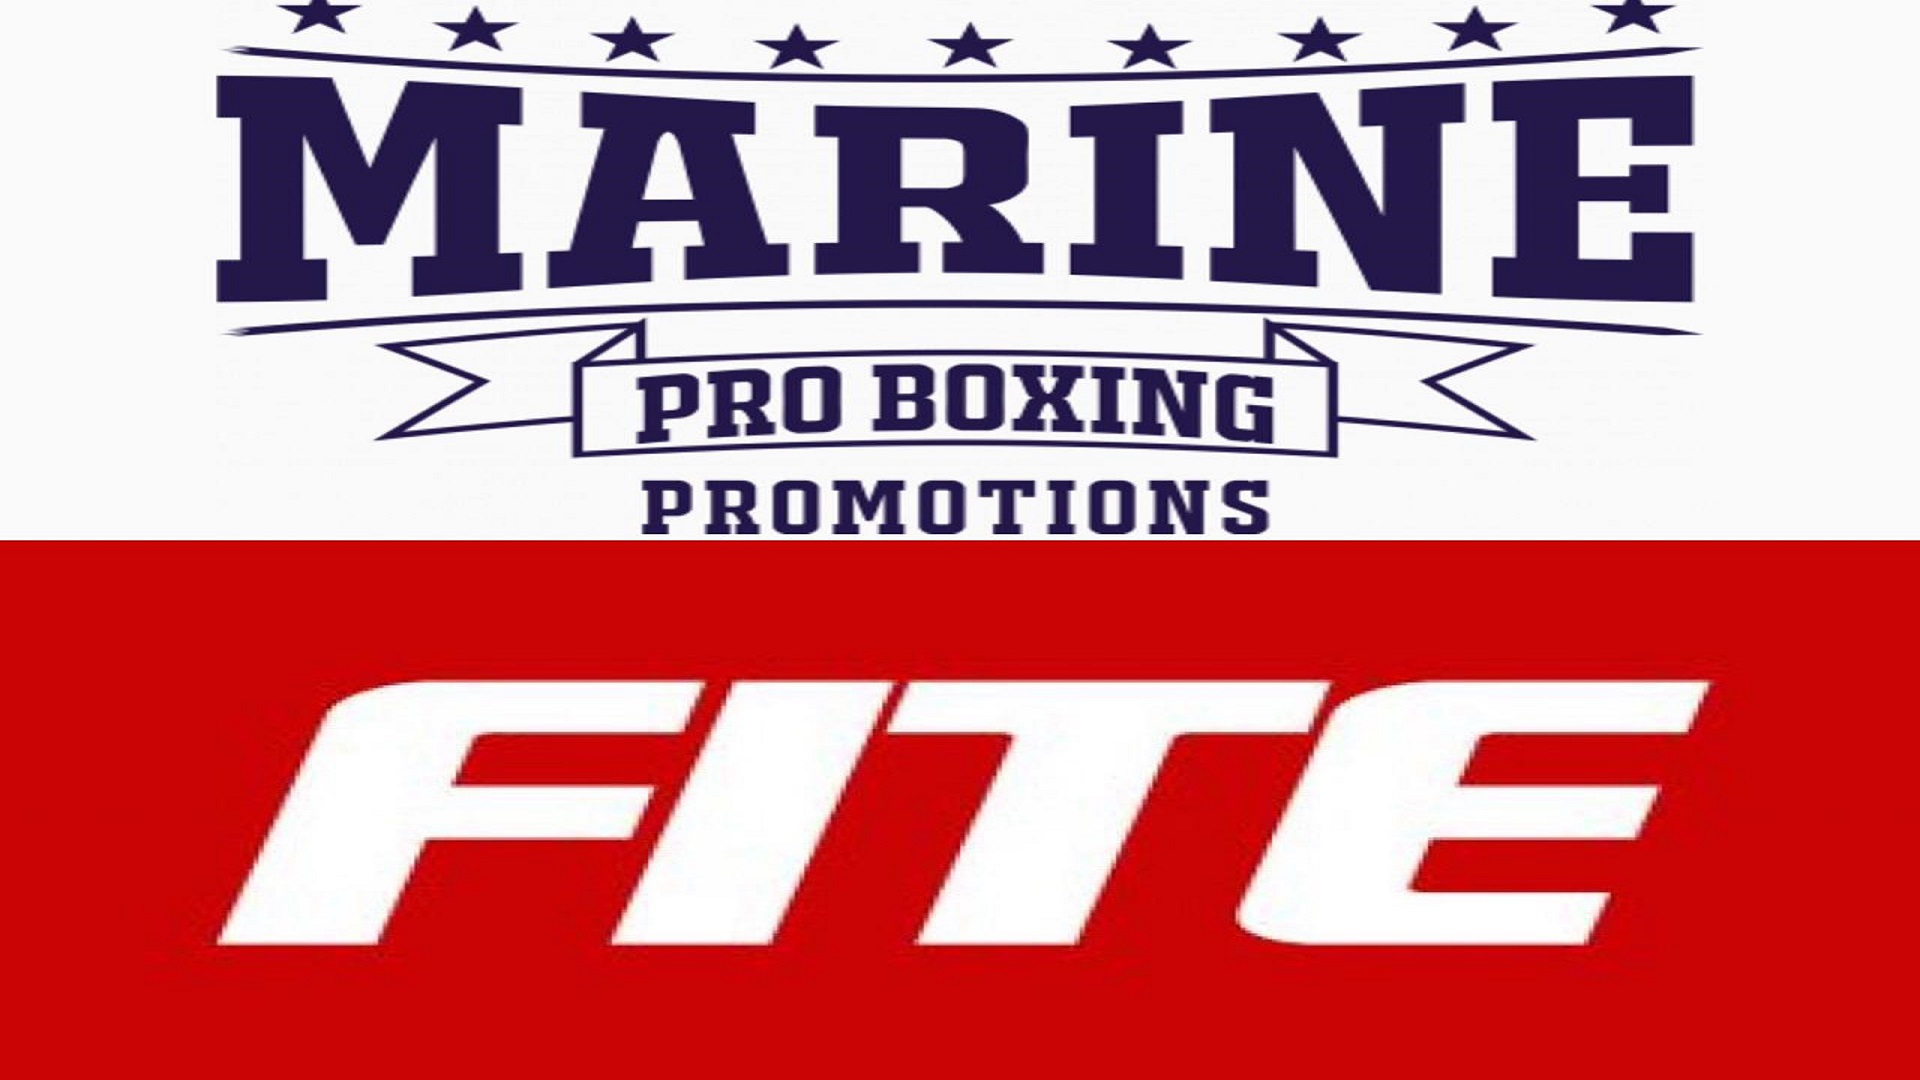 Marine-Pro-Boxing-Promotions-FITE-TV